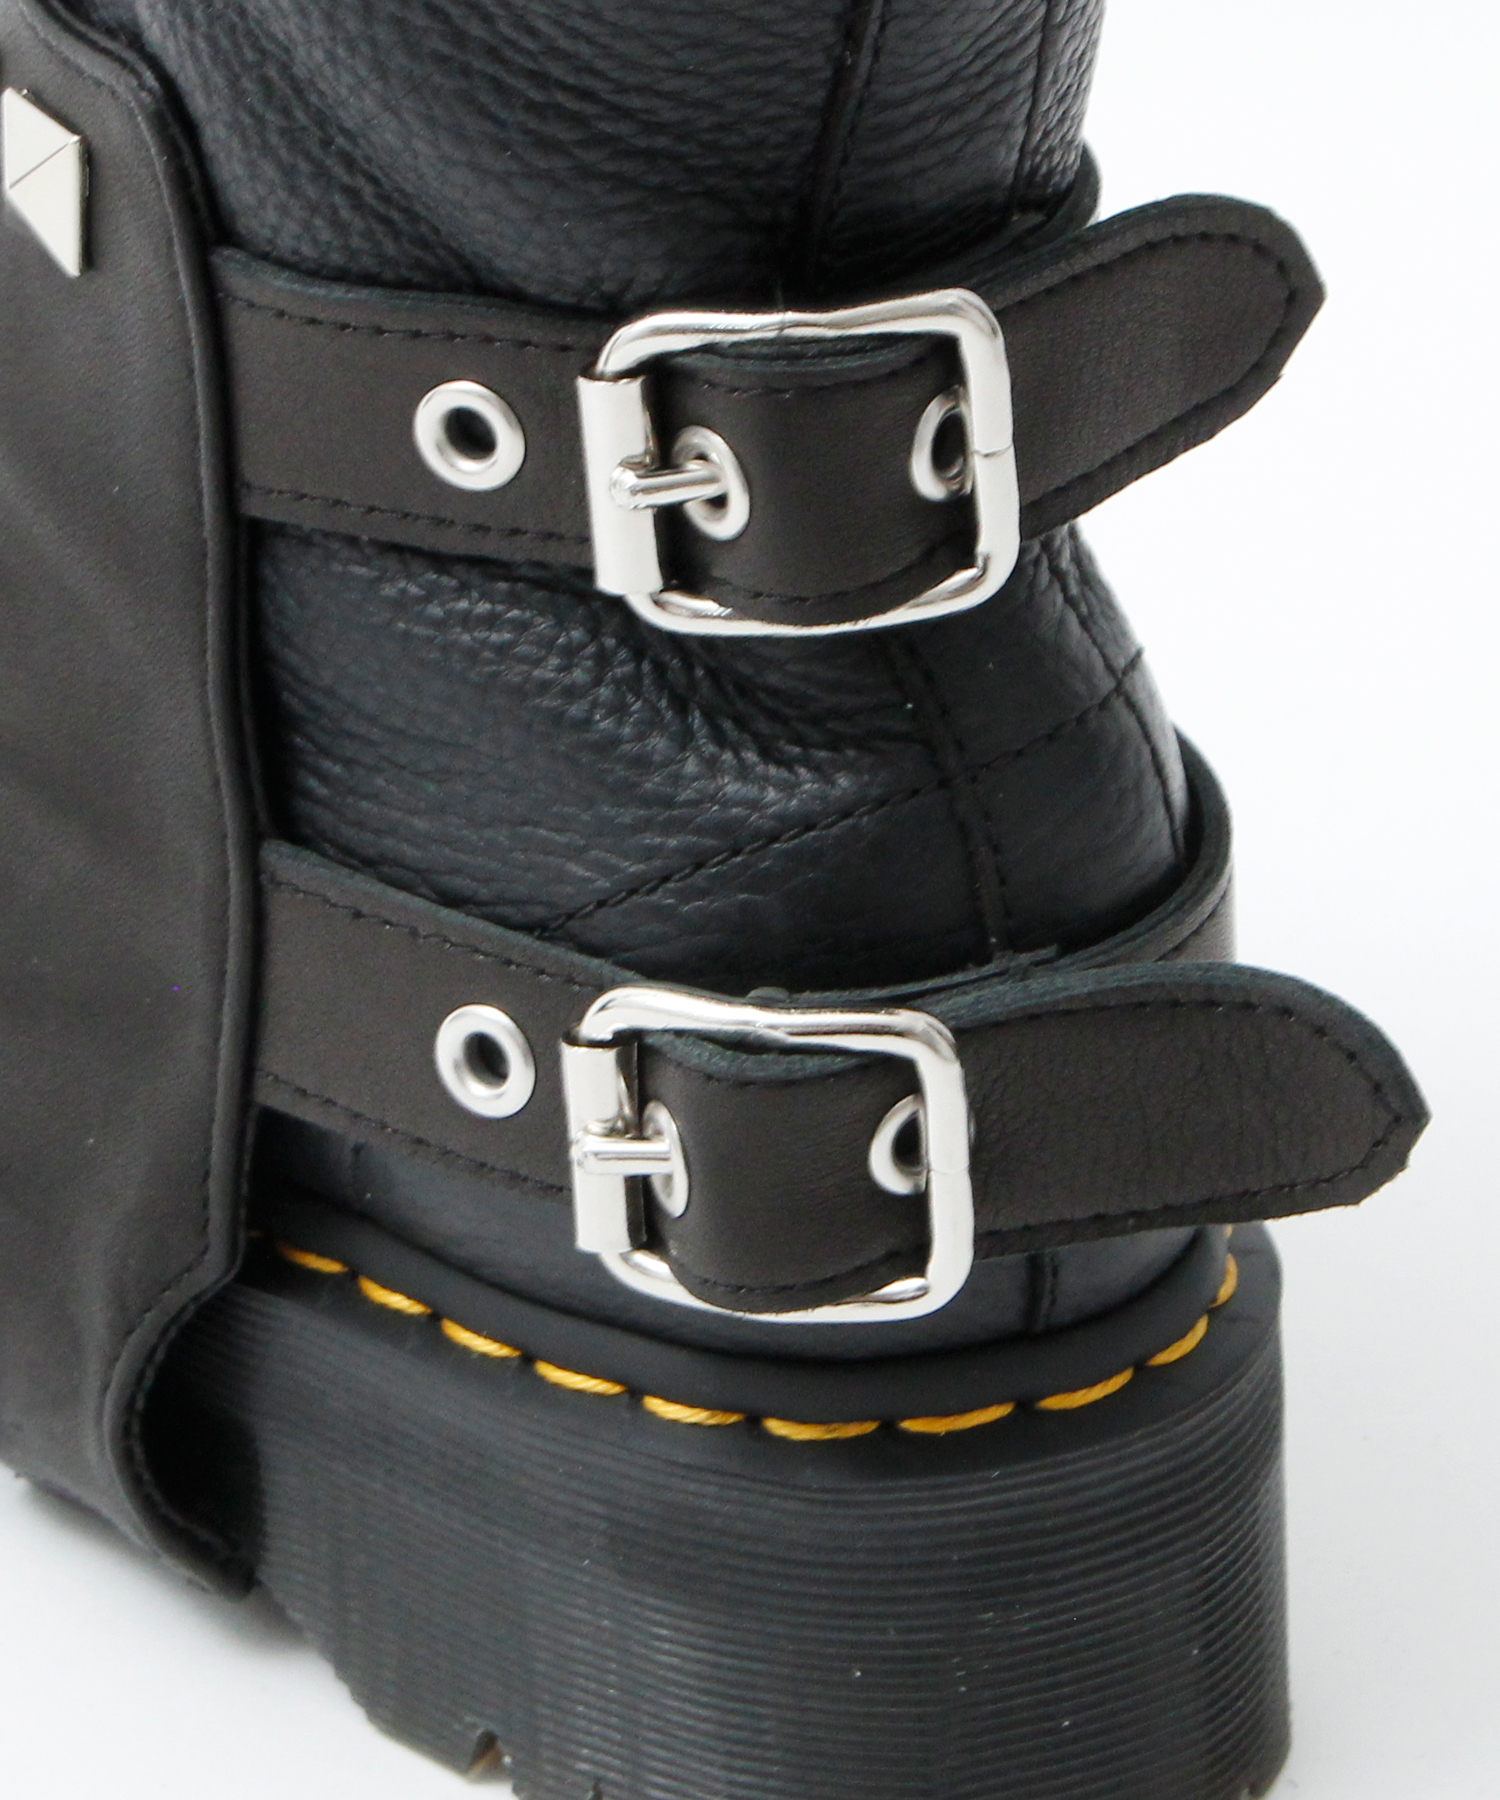 BOOTS SHOELACE COVER